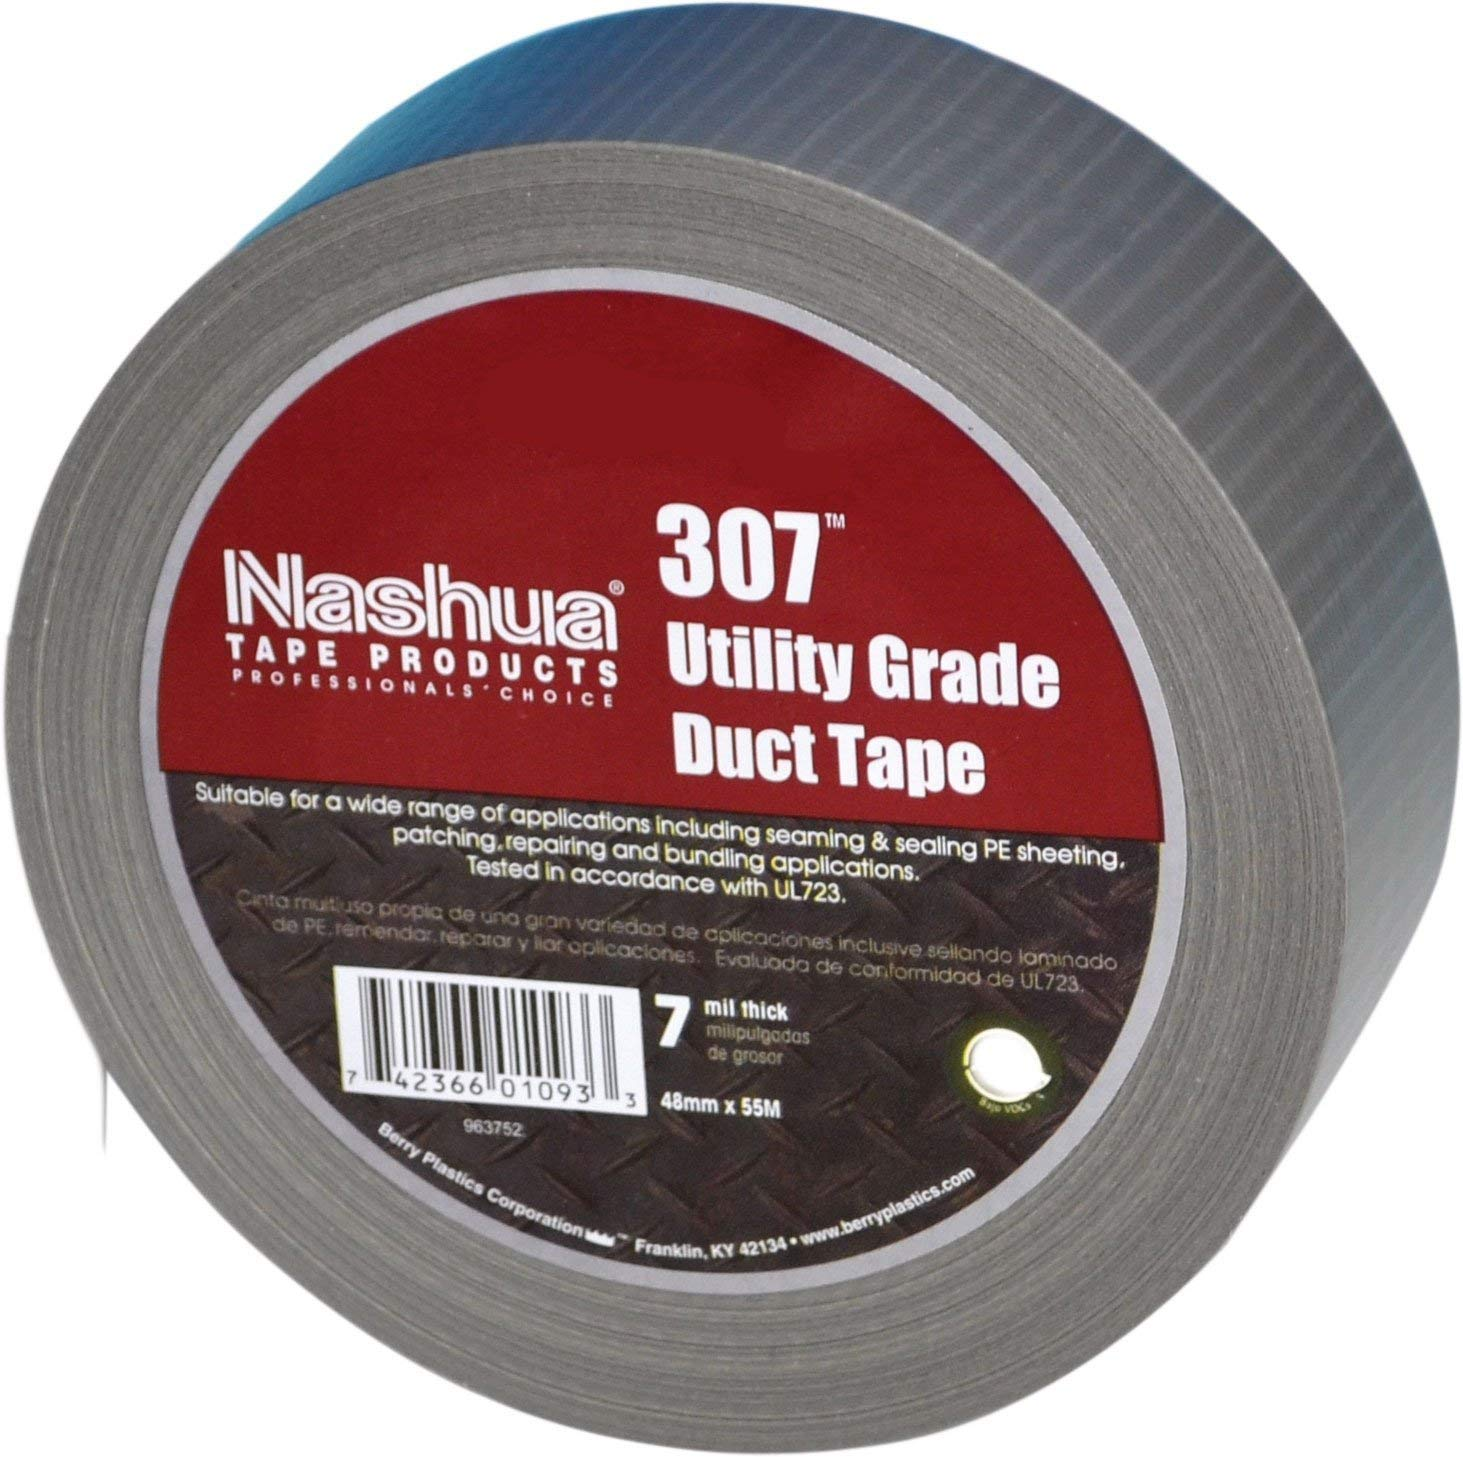 Duct Tape 2 in x 55 yd - Silver - 7 mil - 12 Pack by Nashua